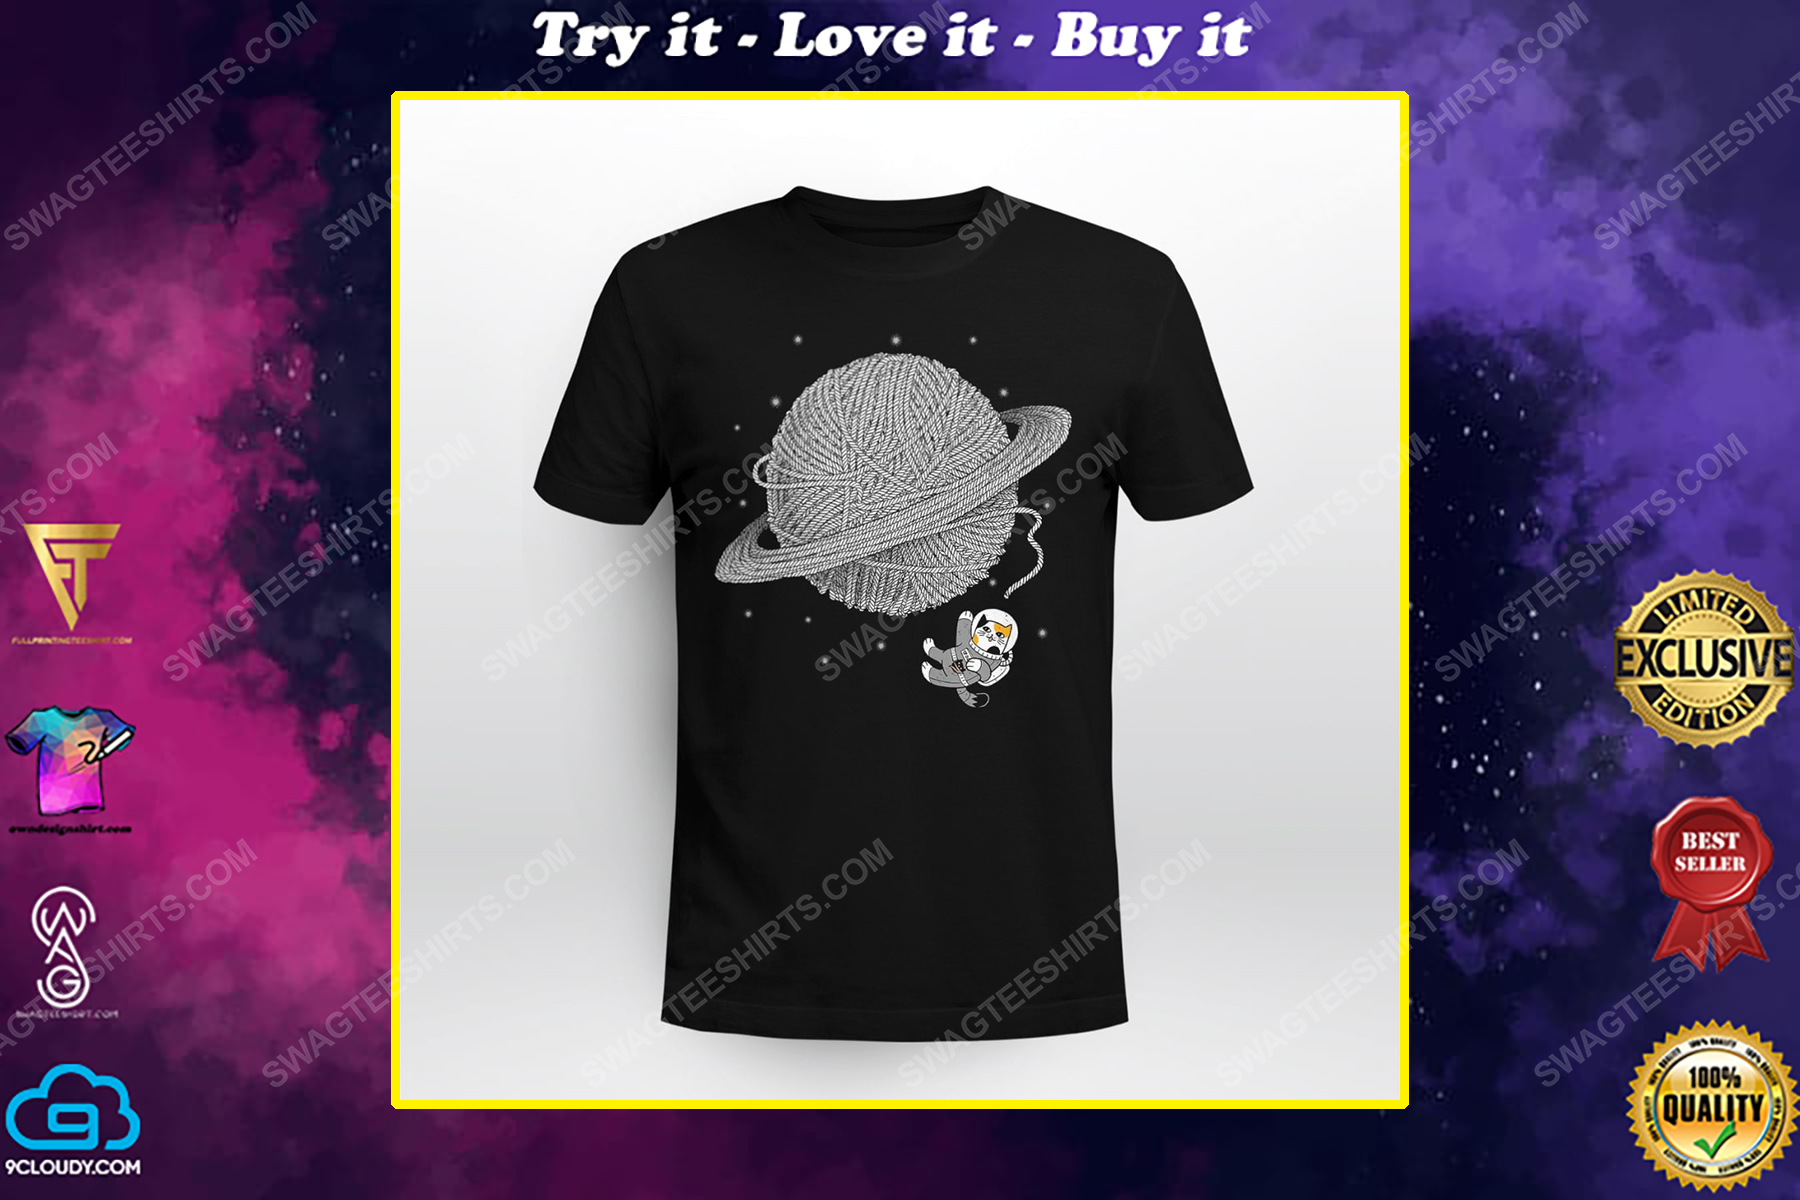 Astronaut and cat lover shirt